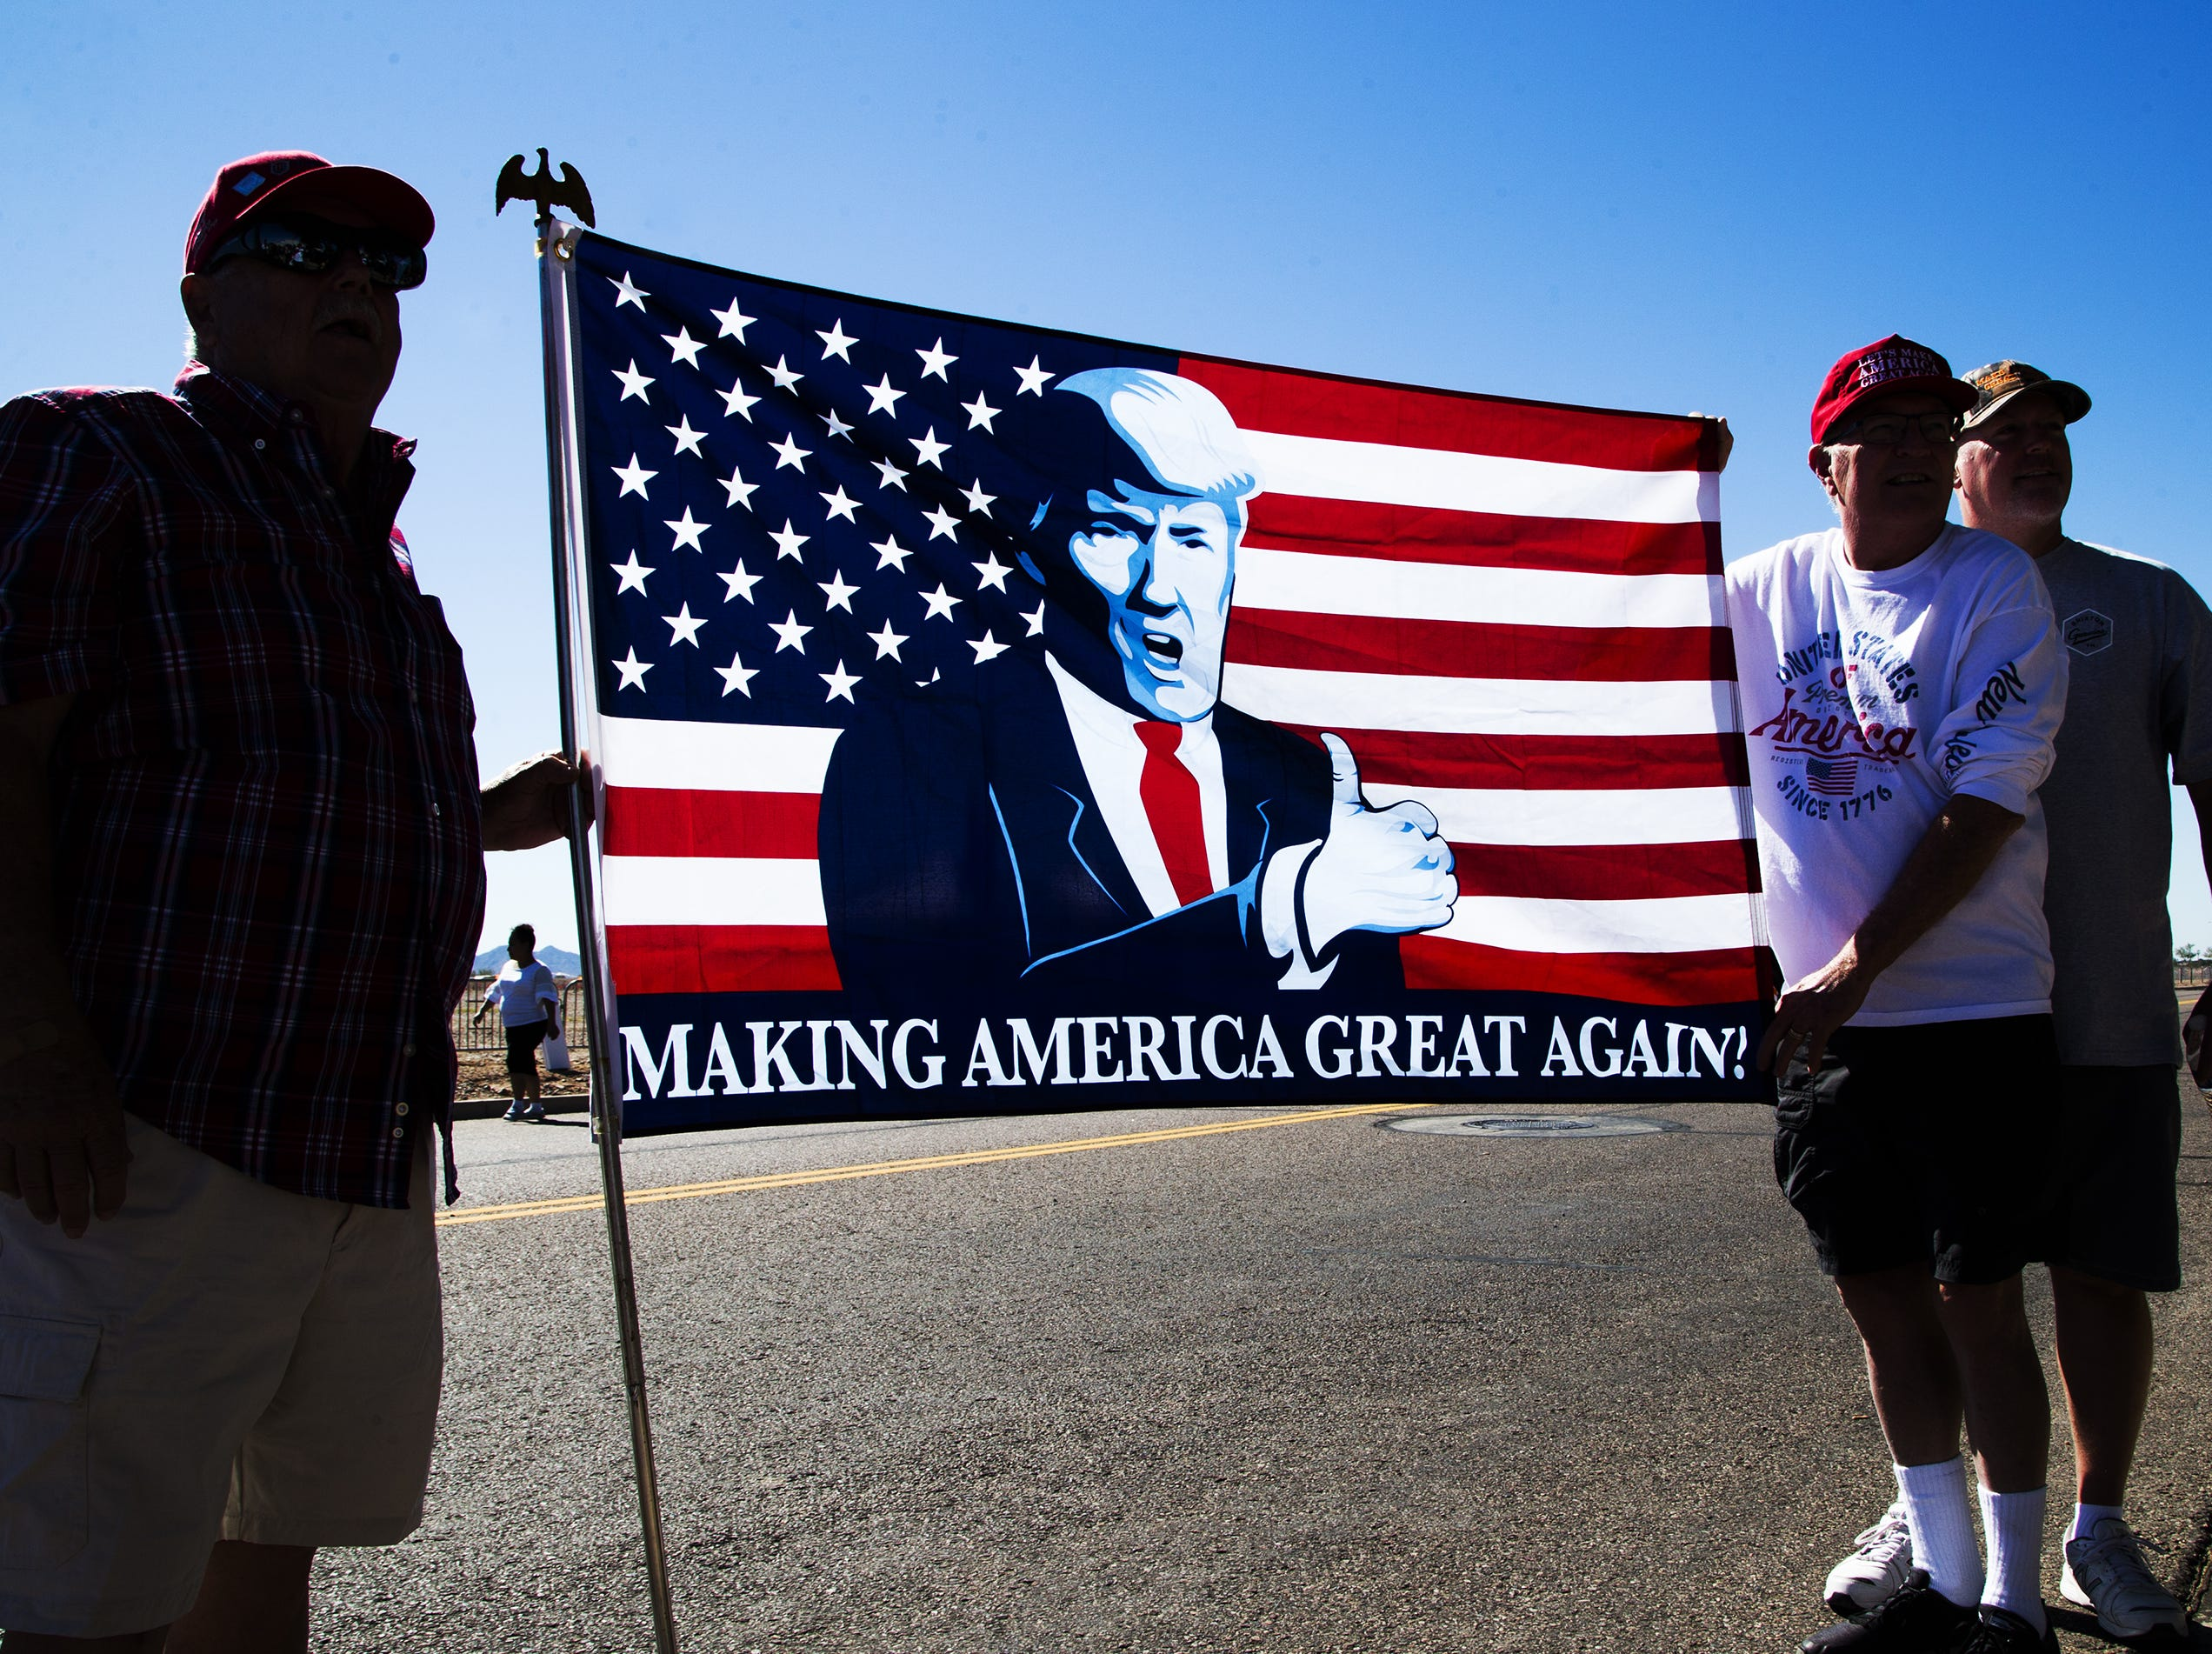 Fans of President Donald Trump show their flag while waiting in line to enter the International Air Response Hangar at Williams Gateway Airport on Oct. 19, 2018. Trump is set to appear Friday evening for a rally supporting Senate candidate Rep. Martha McSally.